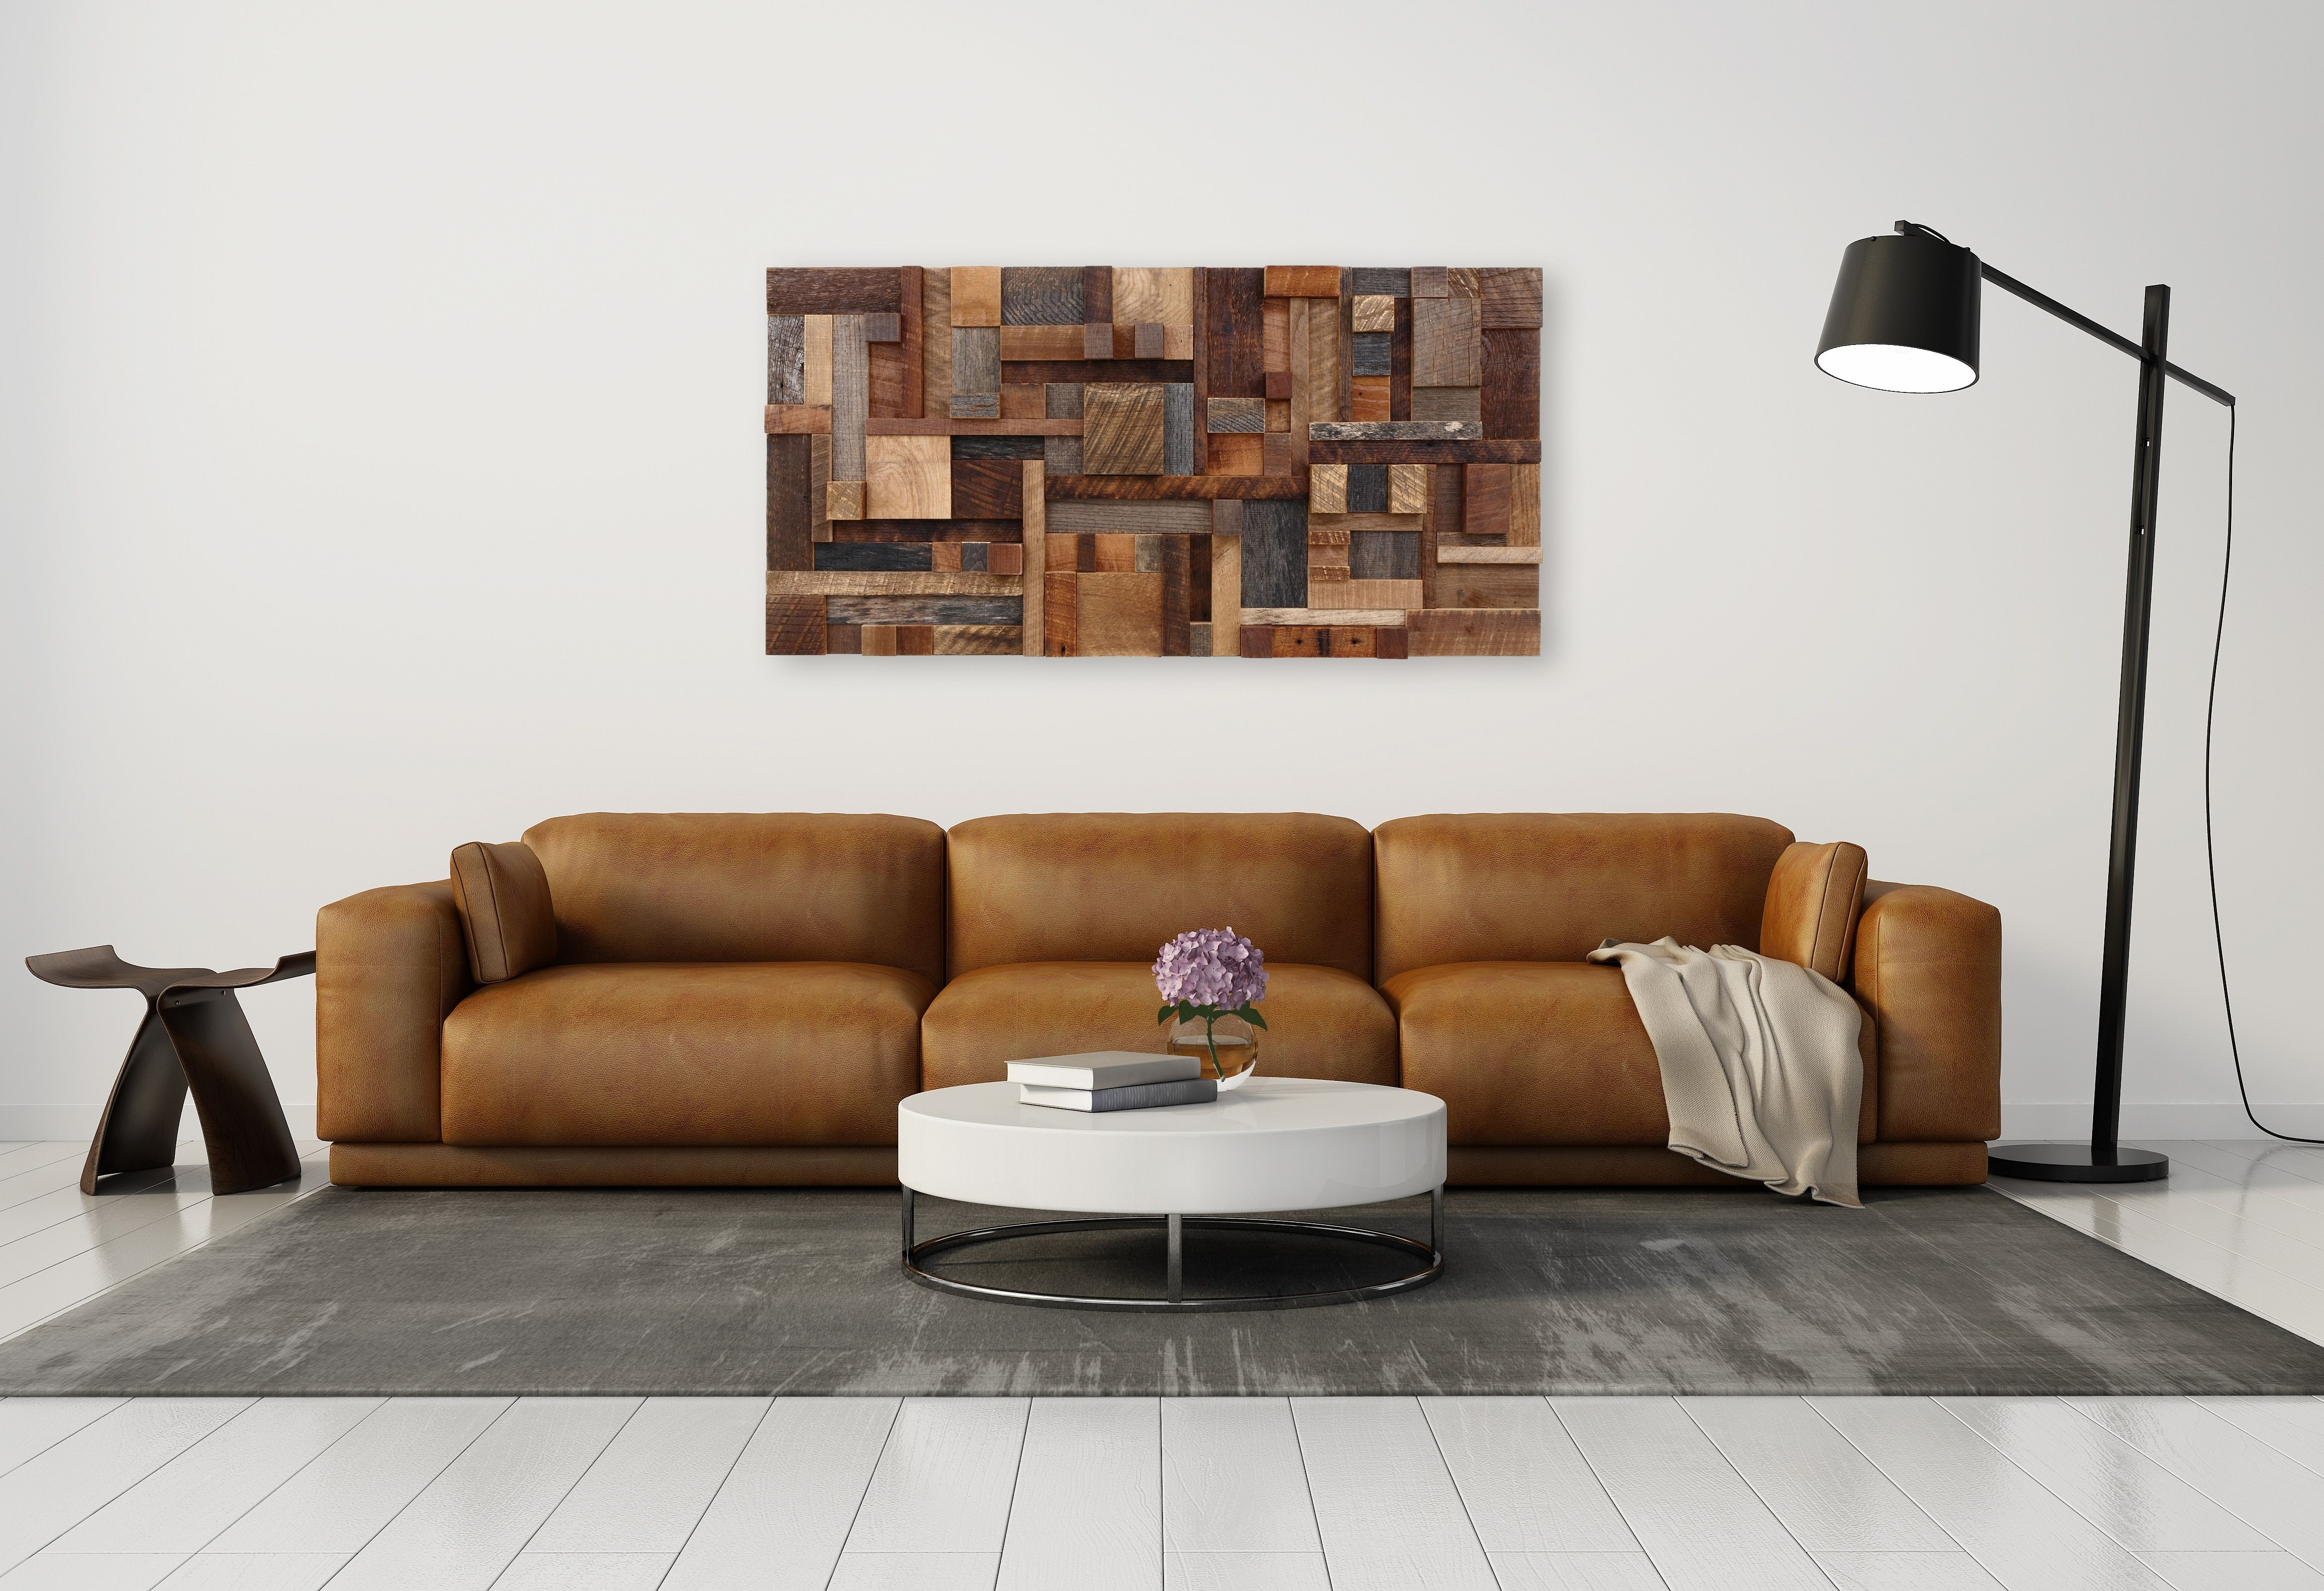 Hand Made Wood Wall Art Of Geometric Shapes, Made Of Reclaimed Within Well Known Geometric Shapes Wall Accents (View 6 of 15)